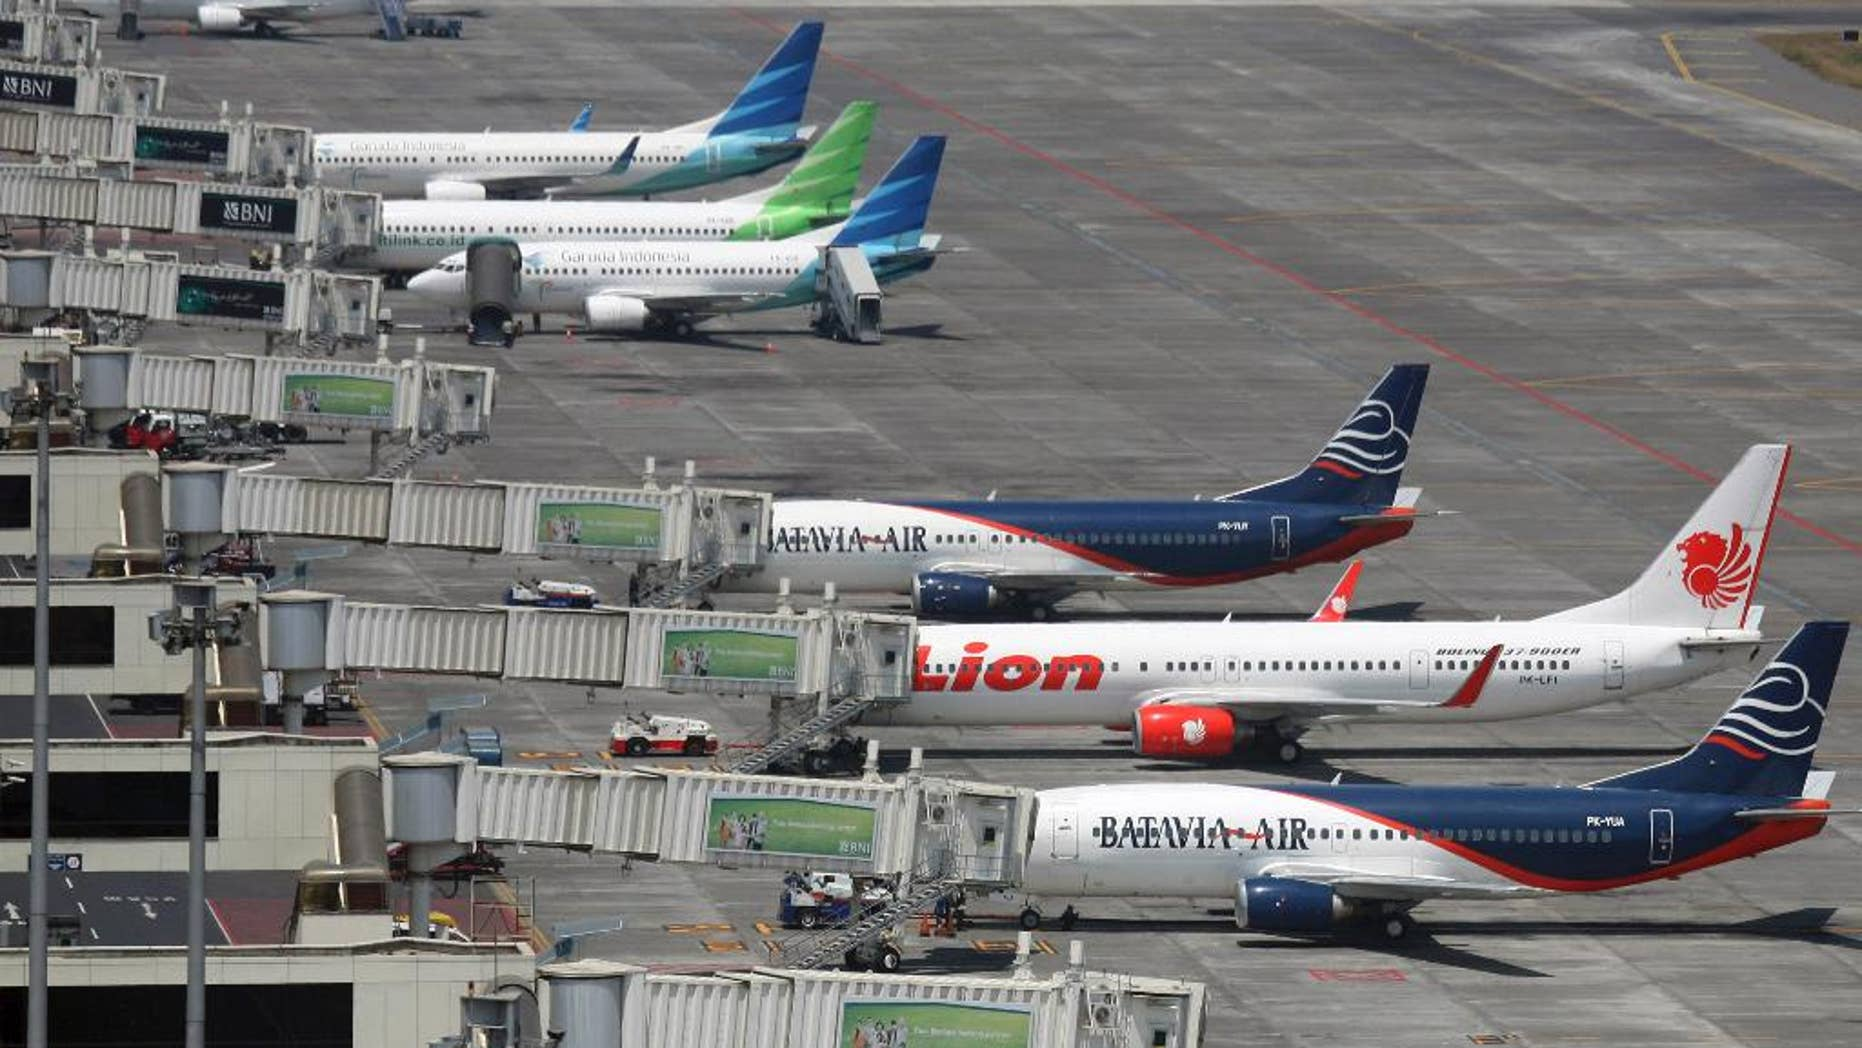 FILE - In this Sept. 25, 2012 file photo, budget airlines' passenger jets, Malaysia's AirAsia, top, Indonesia's Badavia Air, third from bottom, and Indonesia's Lion Air, second bottom, are parked on the tarmac with Indonesian planes of domestic airline Merpati Nusantara, second top, and the flagship carrier Garuda Indonesia at Juanda International Airport in Surabaya, East Java, Indonesia. Air travel in Asia is surging as the middle class gets bigger, discount airlines proliferate and business ties with the rest of the world deepen. (AP Photo/Trisnadi, File)